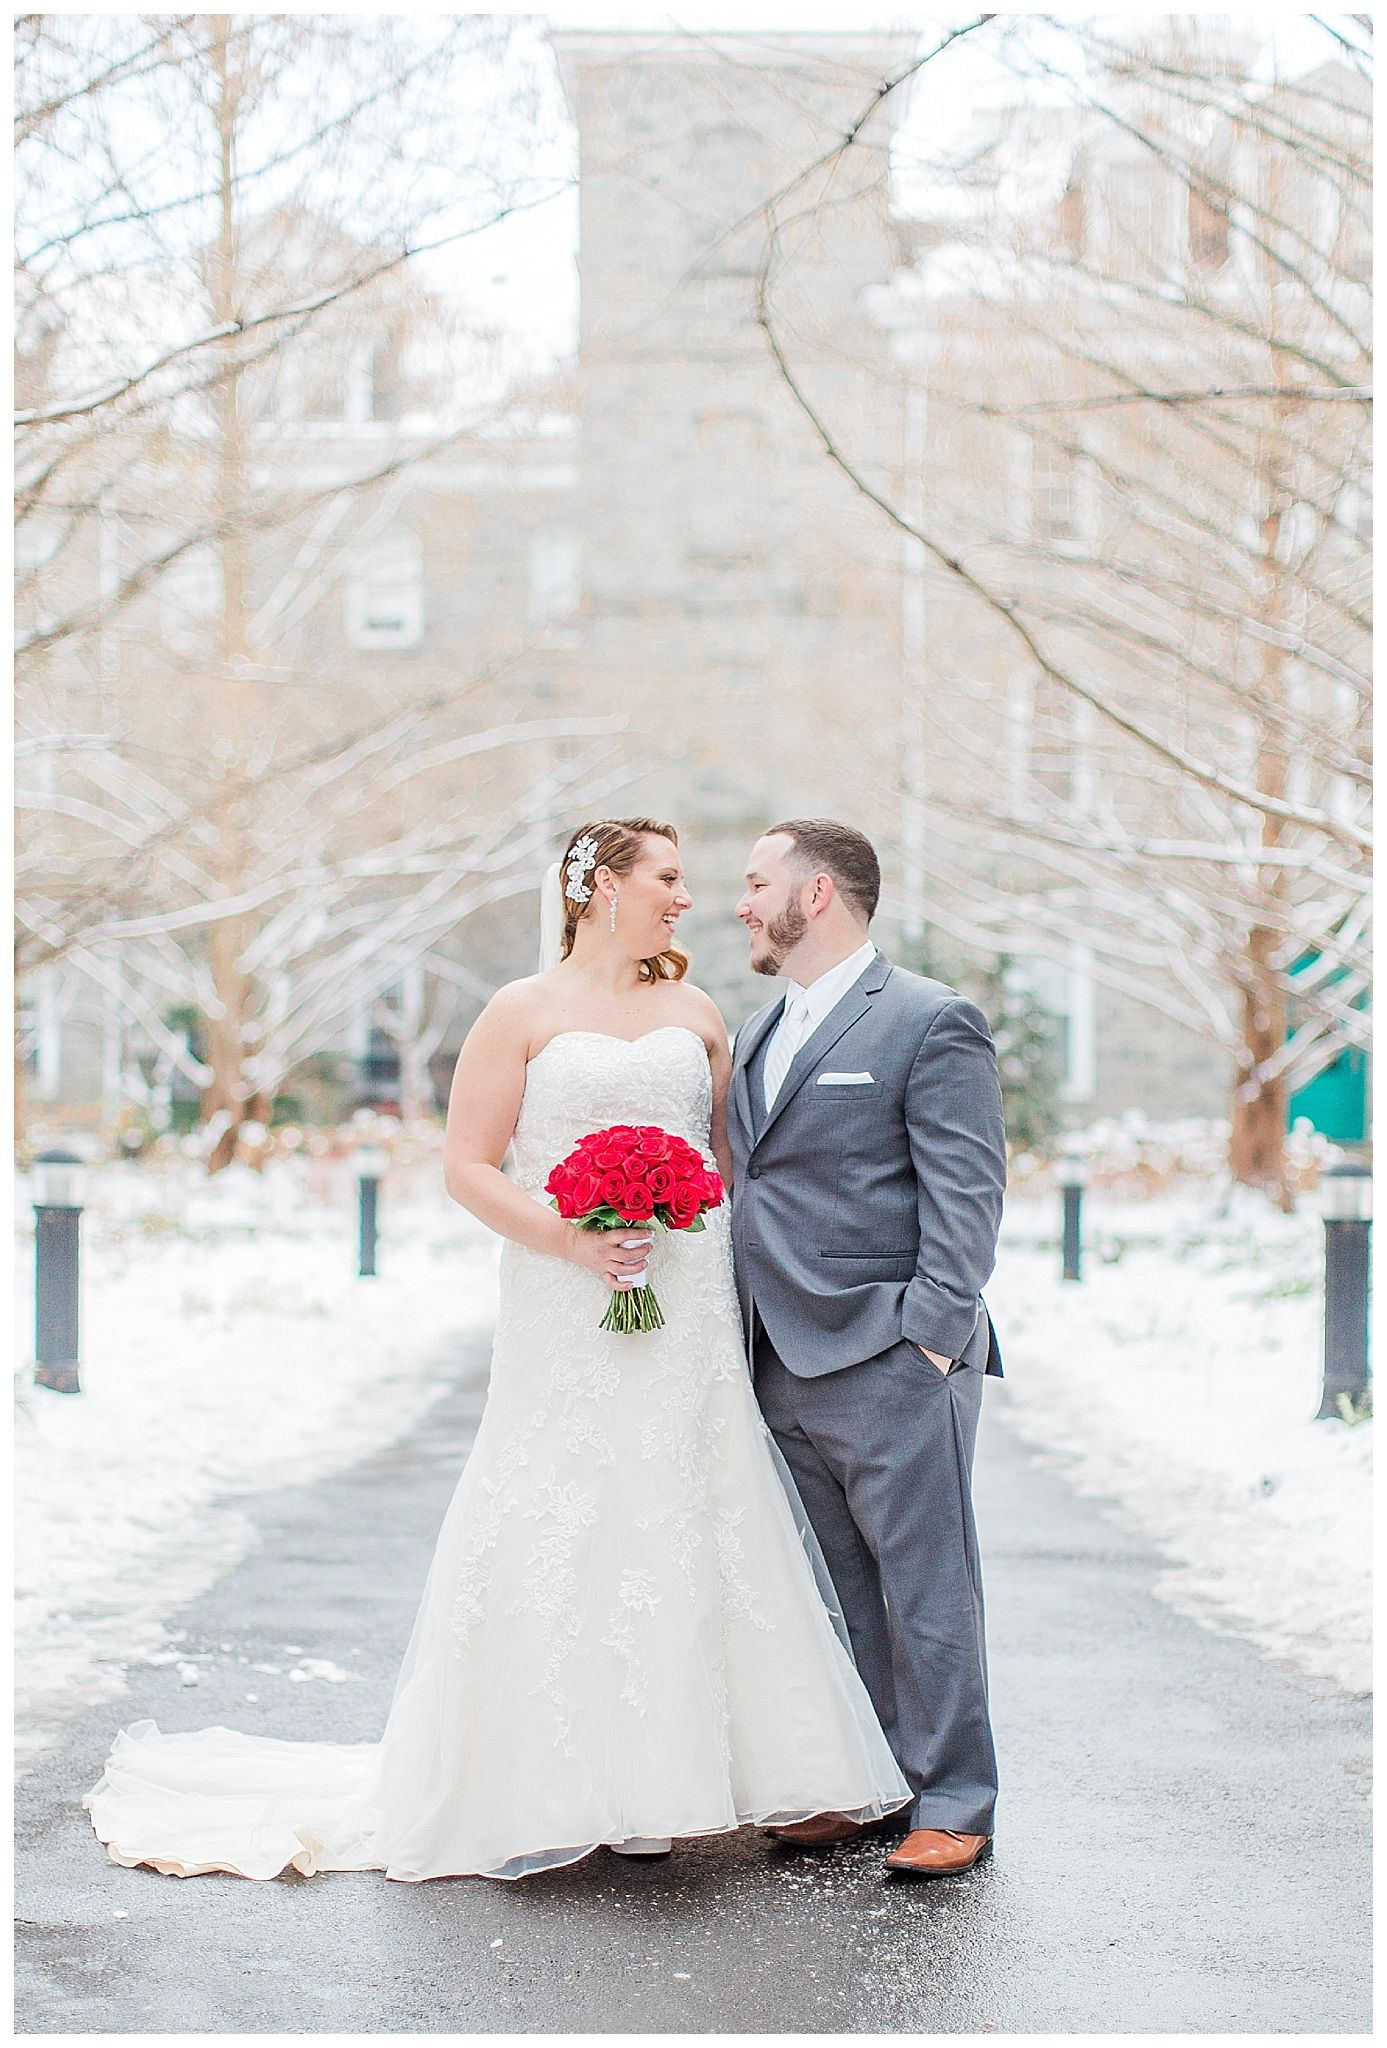 West Chester, PA Wedding | Chester, Winter wedding inspiration and ...